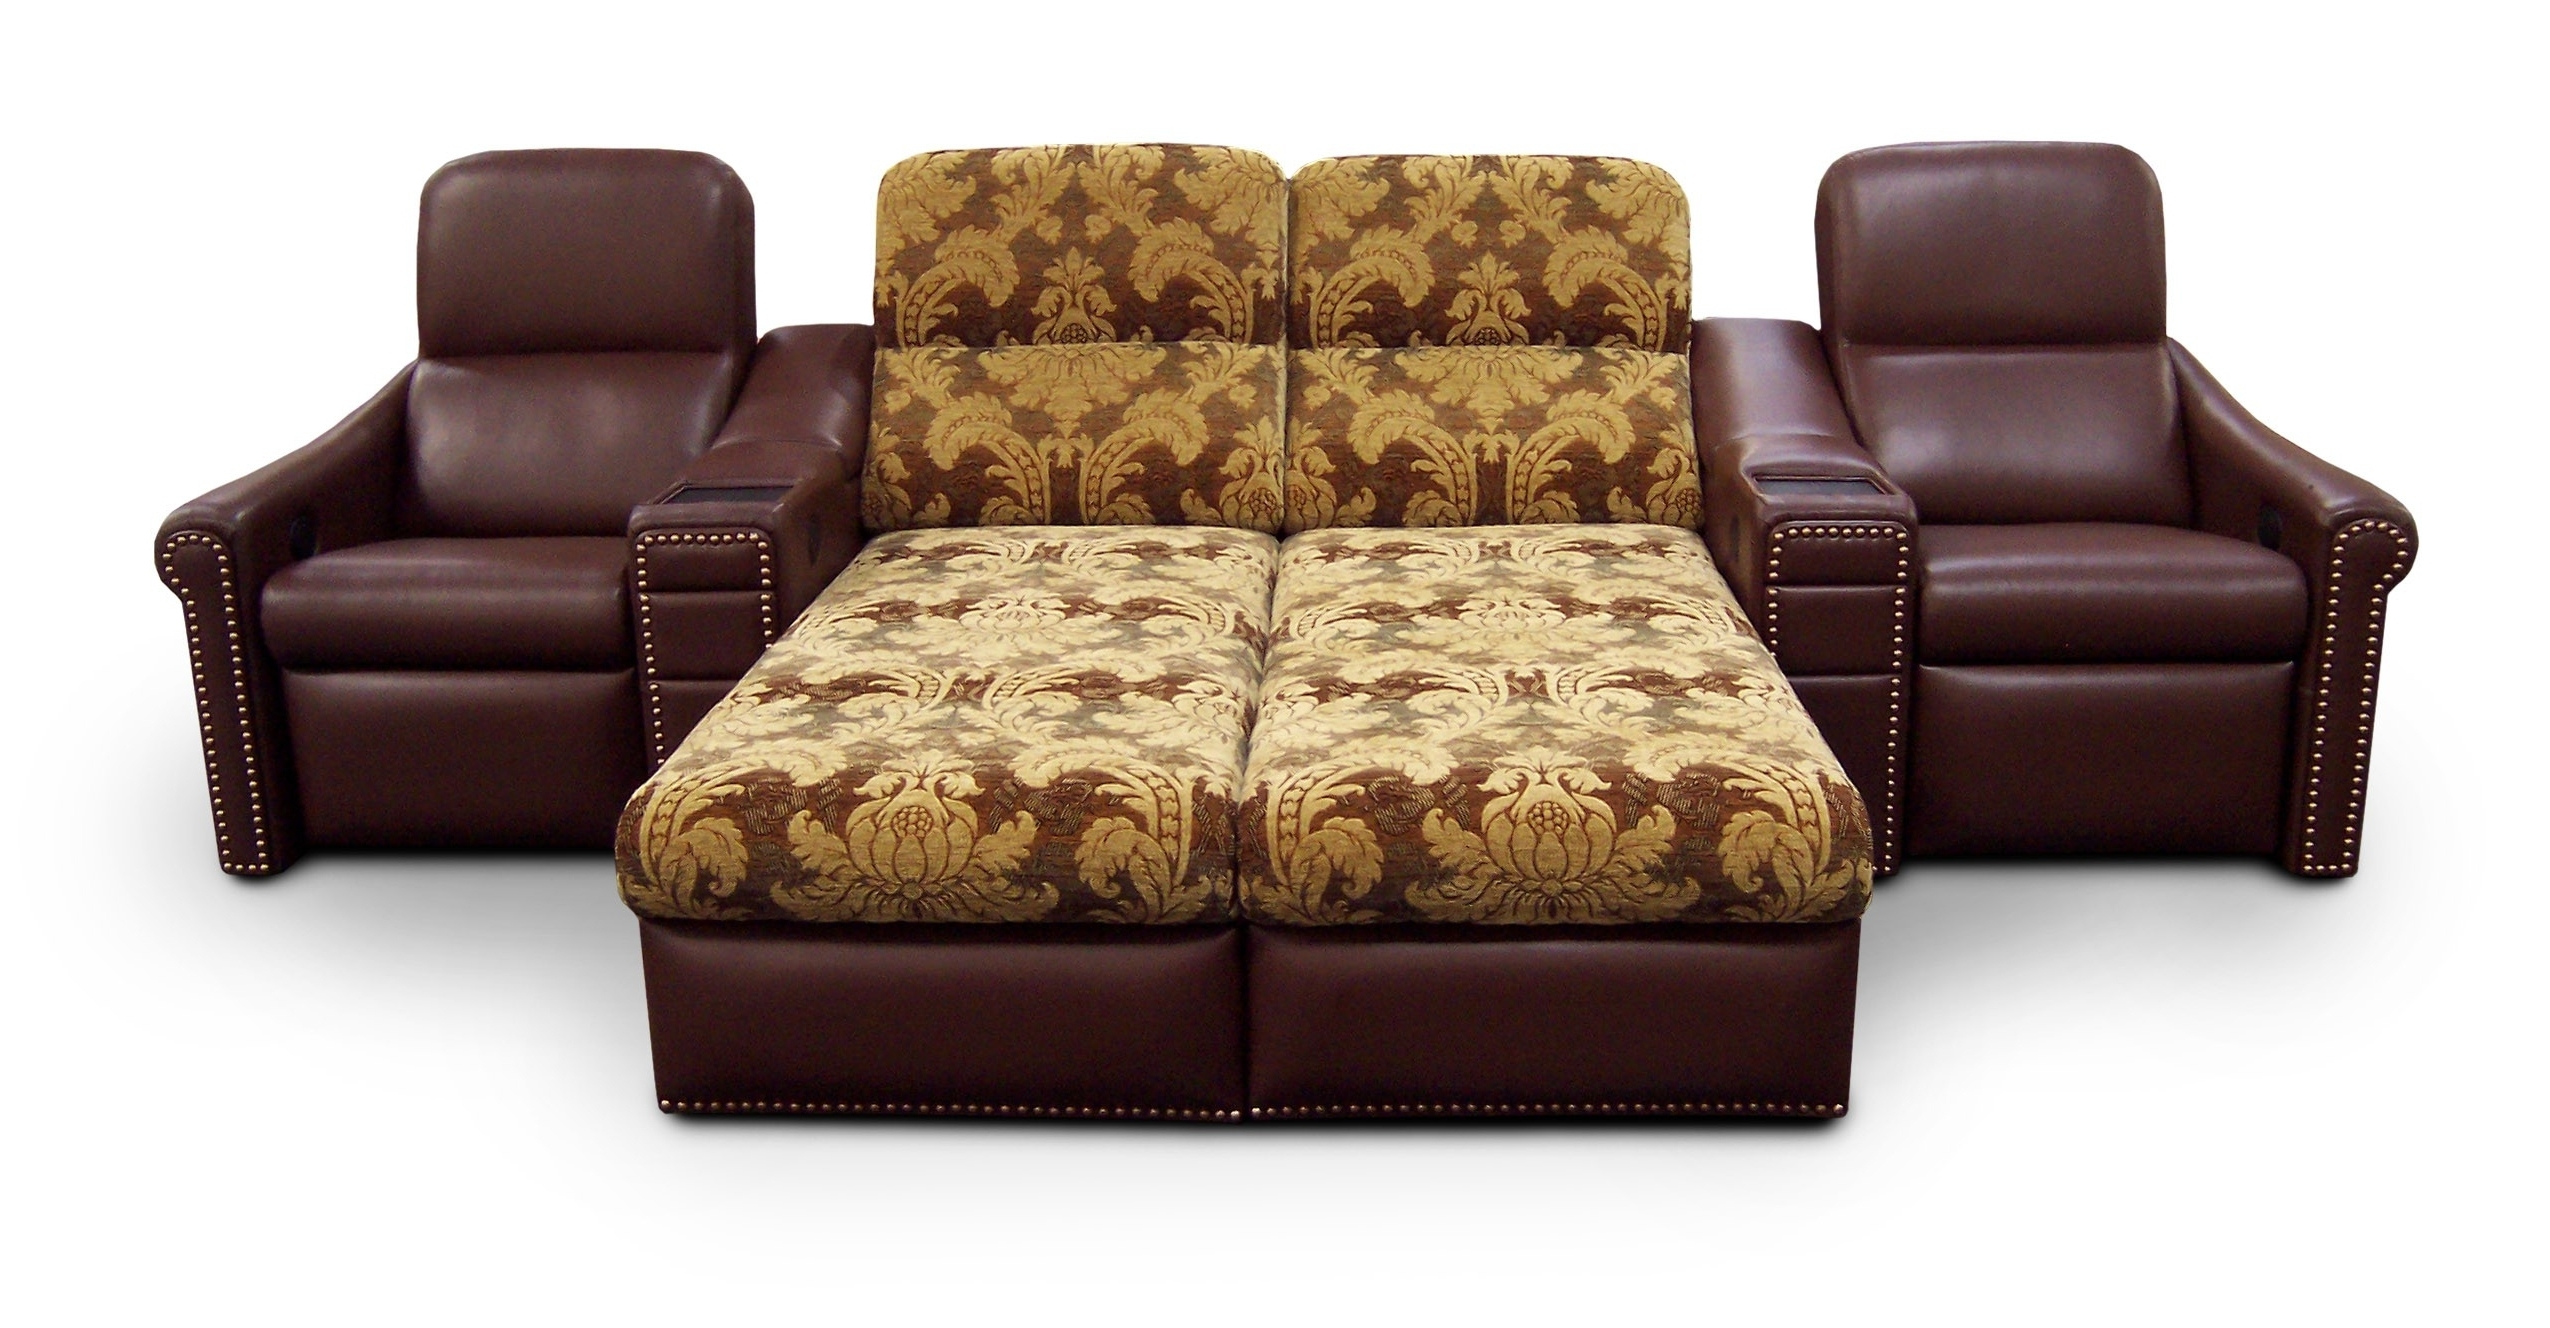 Most Recent Reclining Chaise Lounges For Fabulous Reclining Chaise Lounge With Reclining Sofa With Chaise (View 8 of 15)